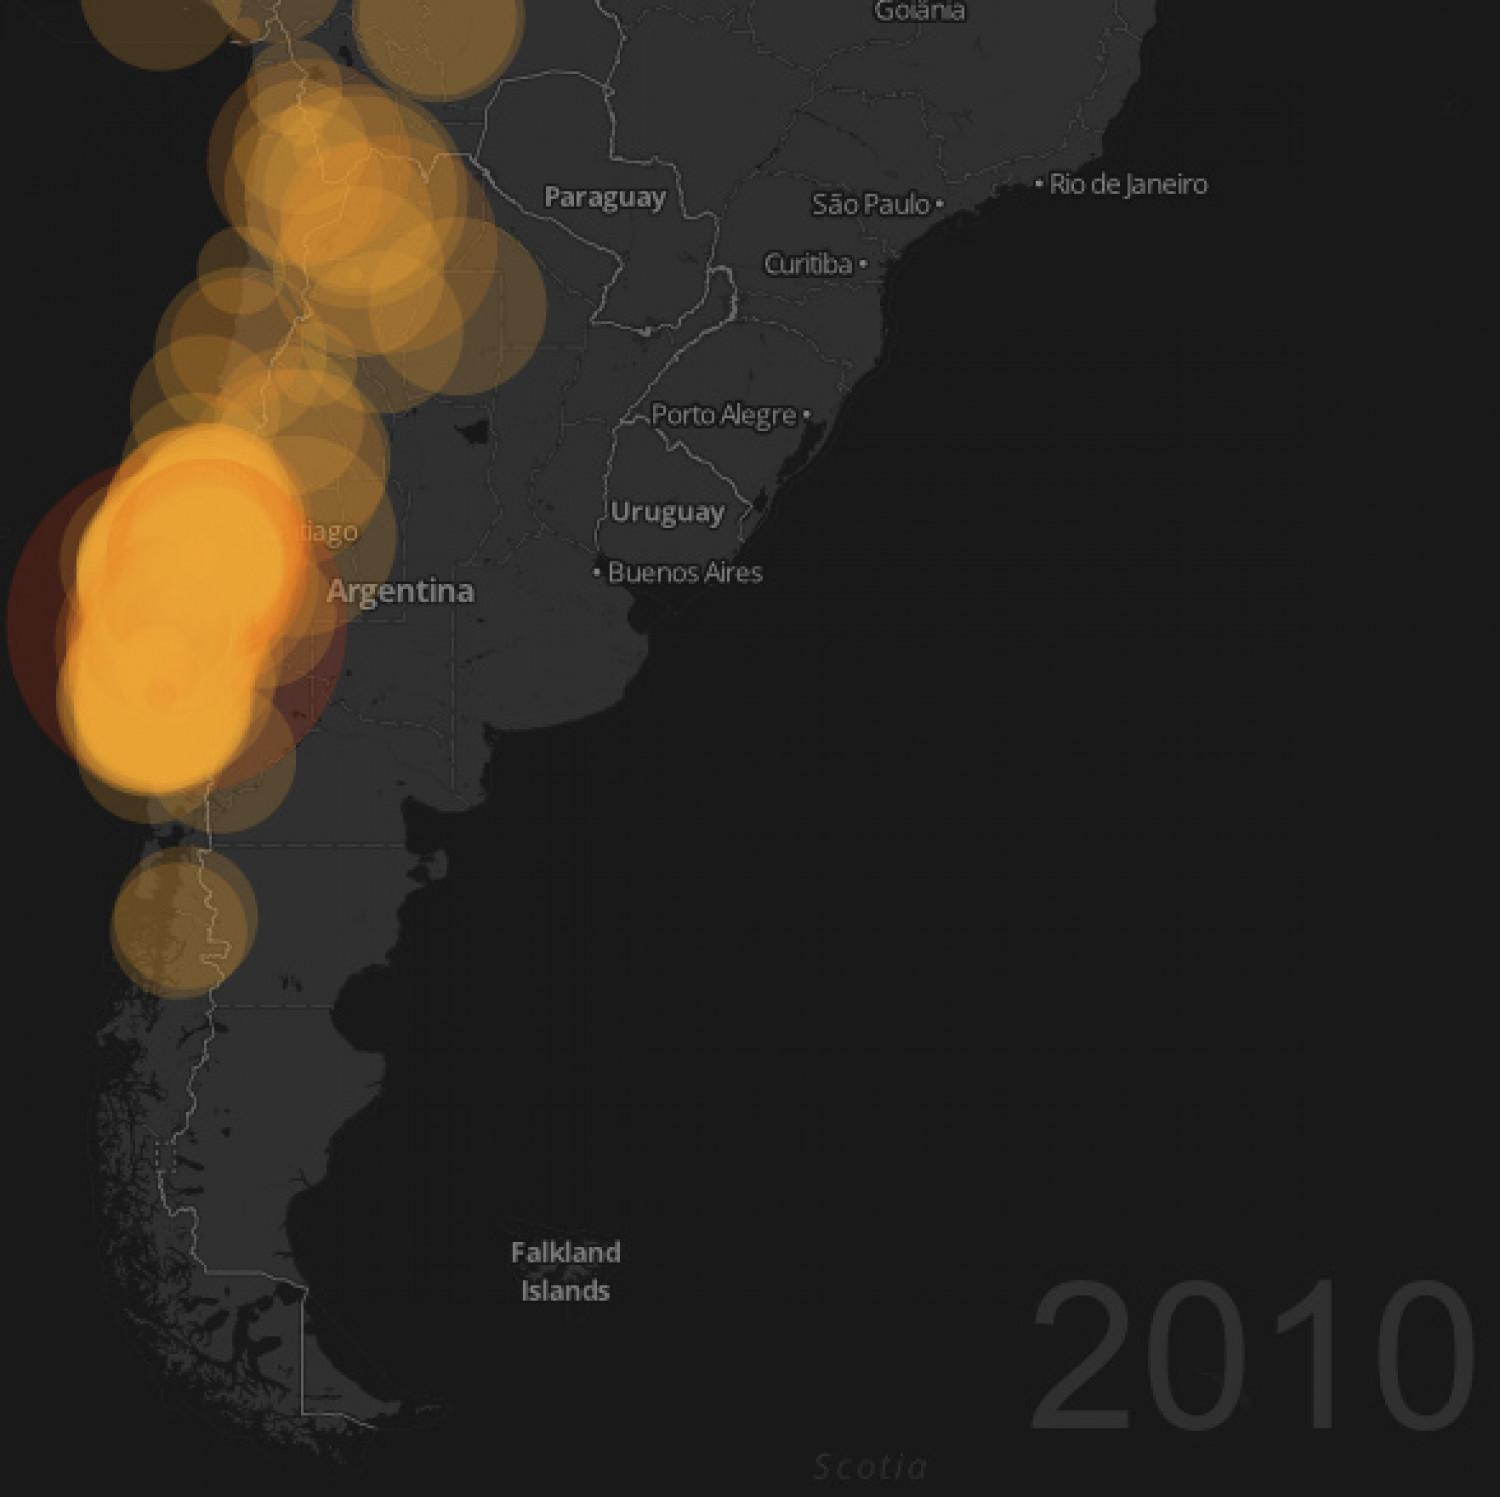 Earthquakes in Chile since 1900 Infographic